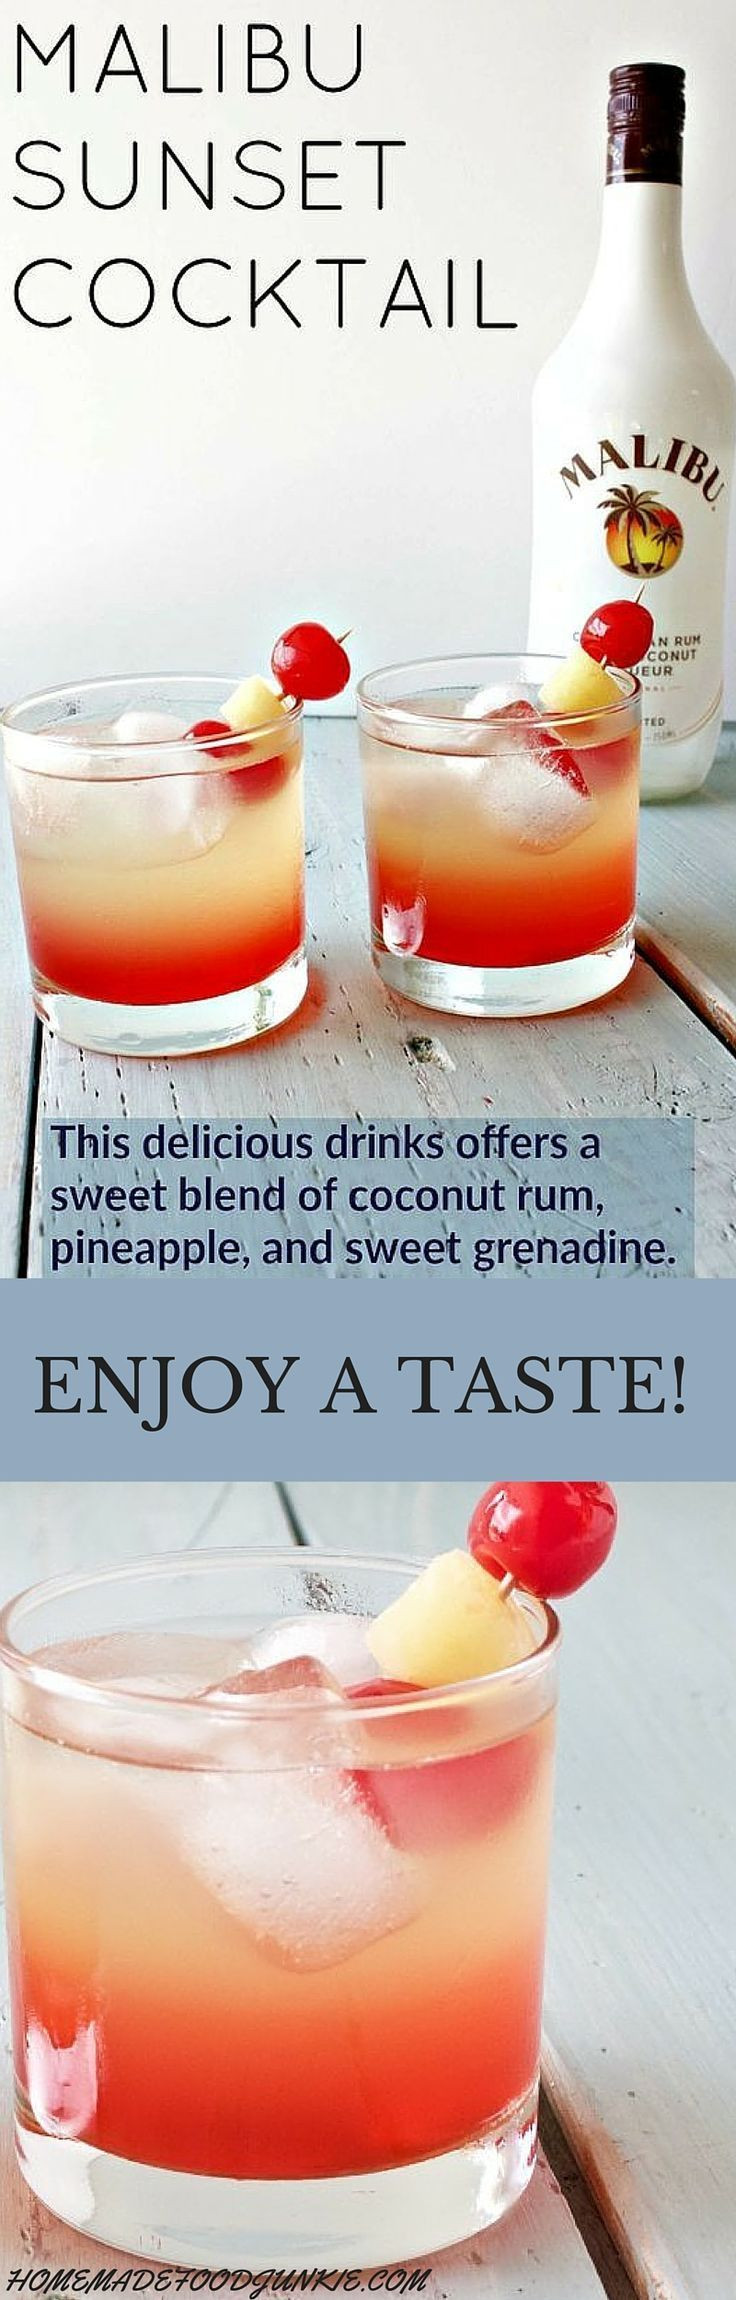 Easy Rum Drinks  44 best images about Malibu on Pinterest